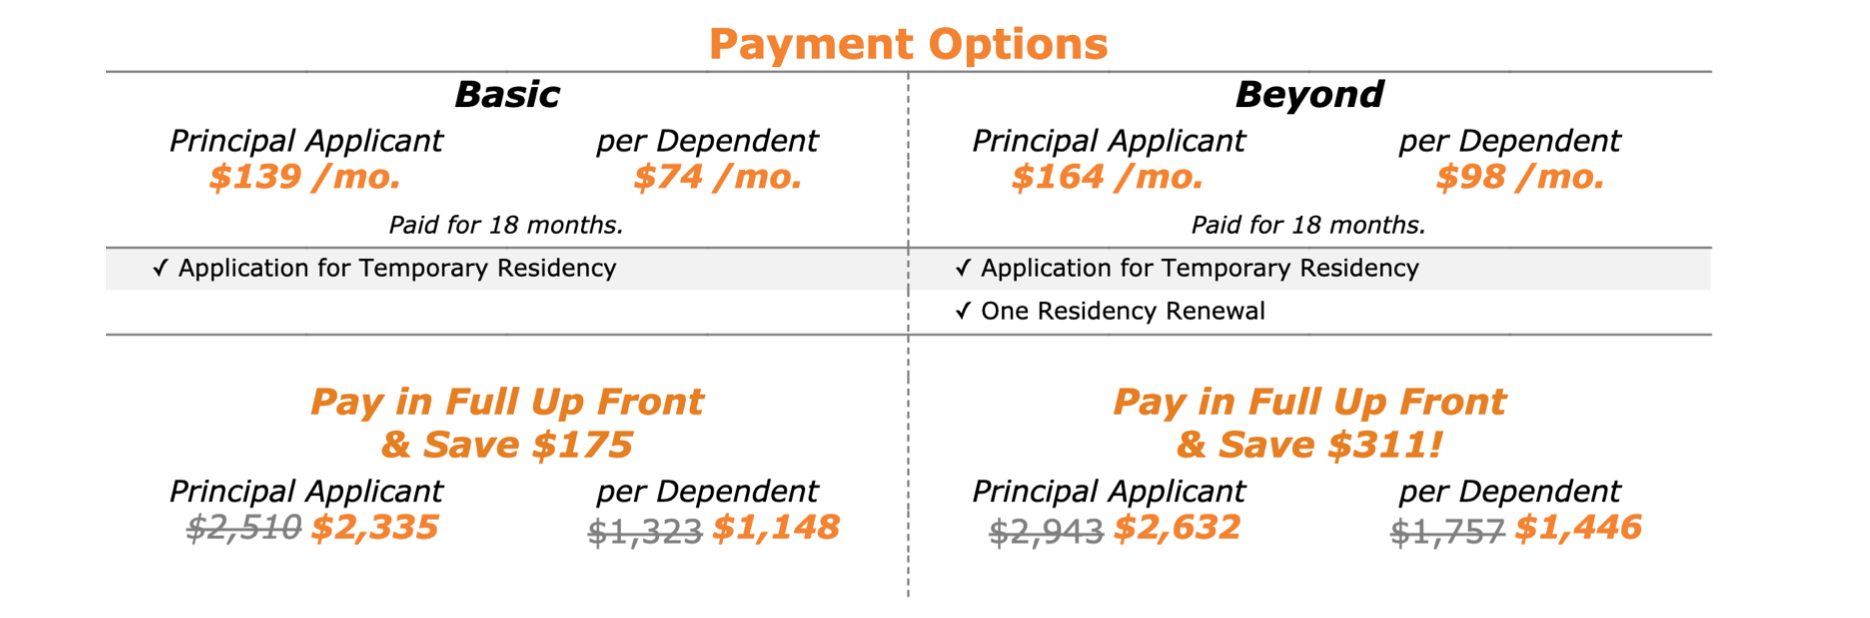 Payment Options for Temporary Residency as an Investor